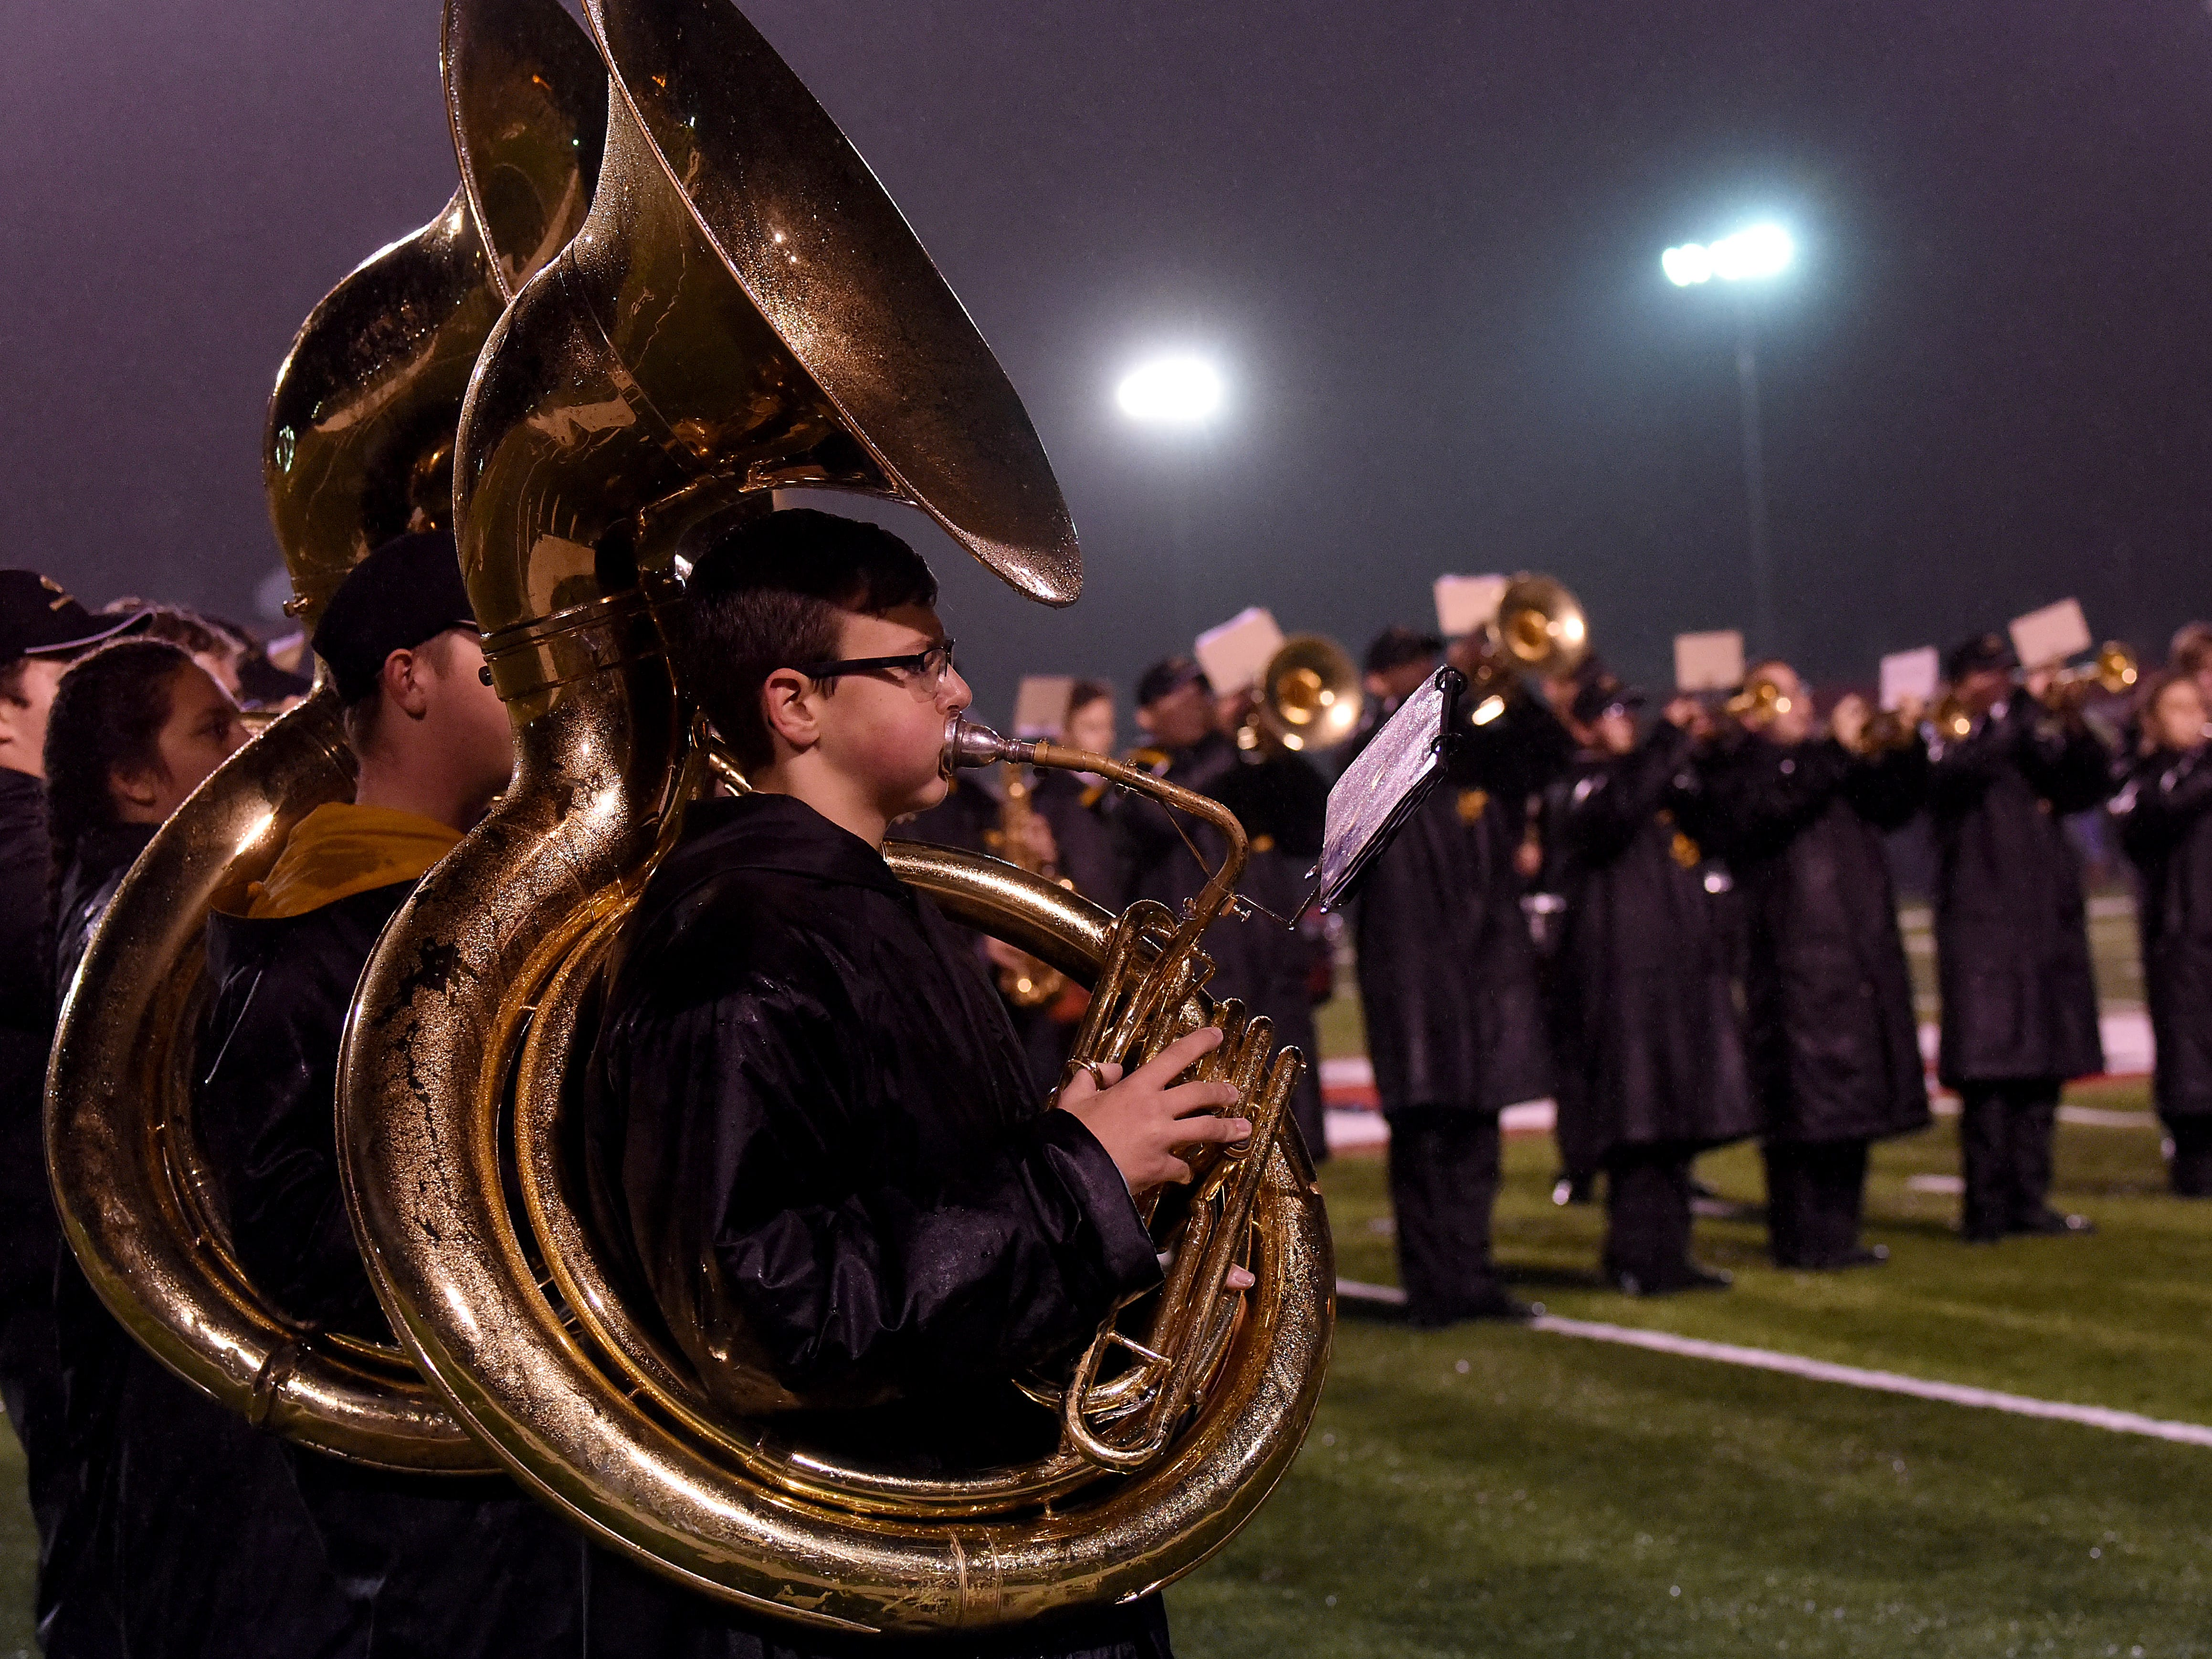 Coshocton tubaist Sheldon Stotts performs with both the Coshocton and River View bands during a rainy halftime show on Friday, Oct. 26, 2018,